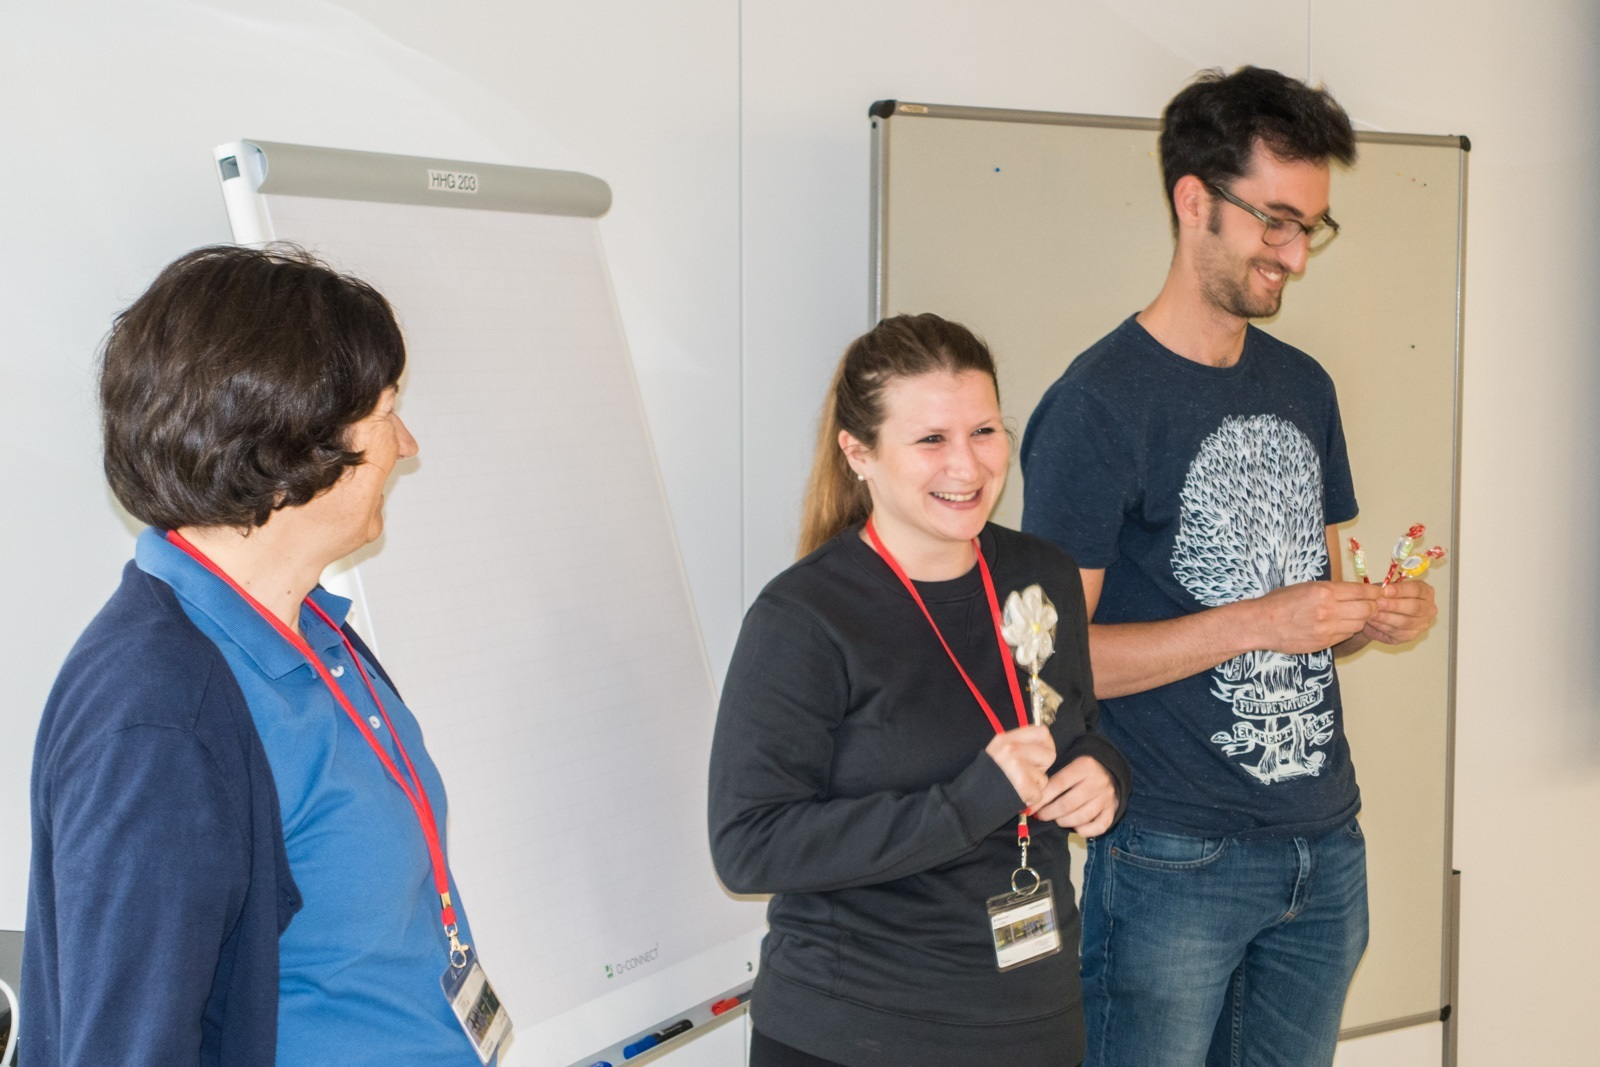 <p>Congratulations Beatrice Festa and Ermanno Malagola, winners ex-aequo of the best poster award!</p>